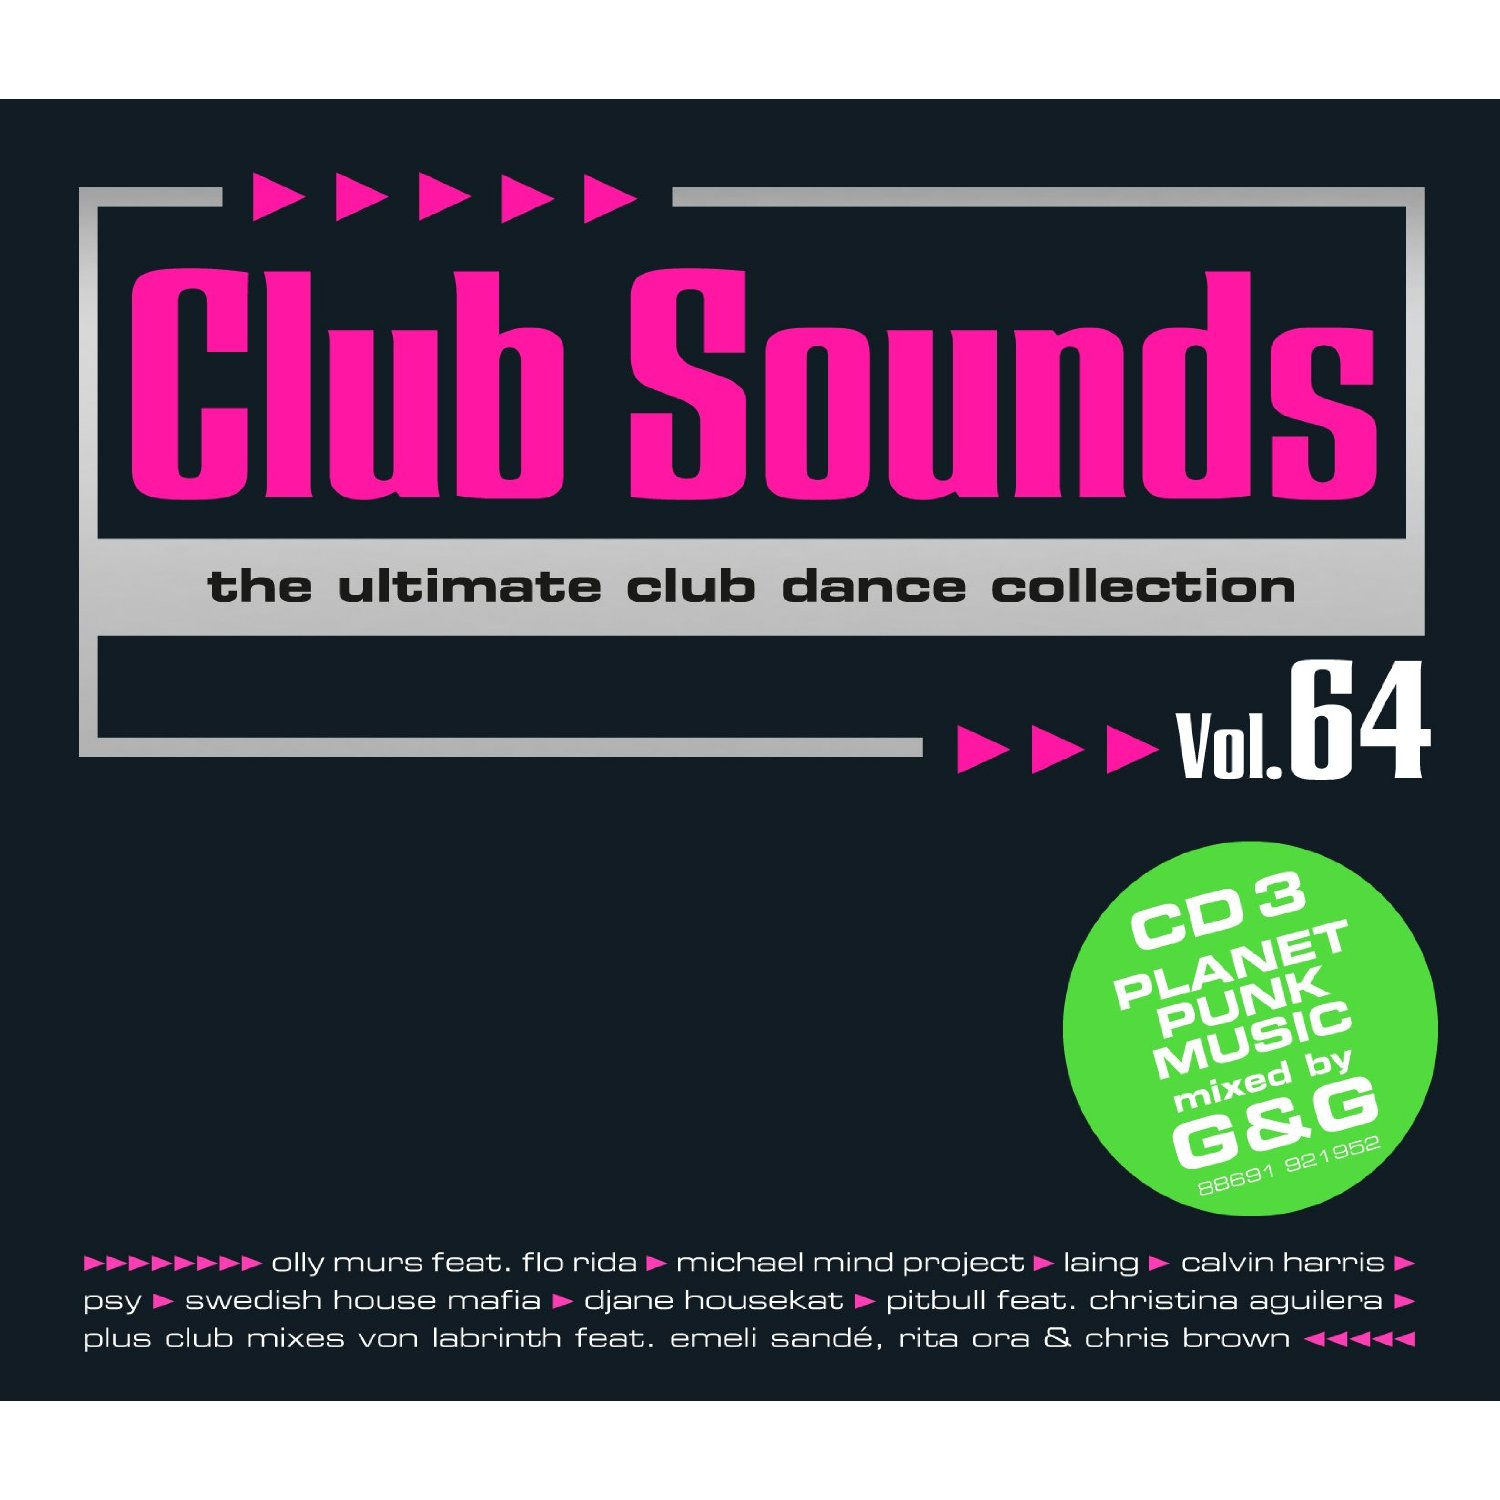 Club Sounds mixed by G&amp;G